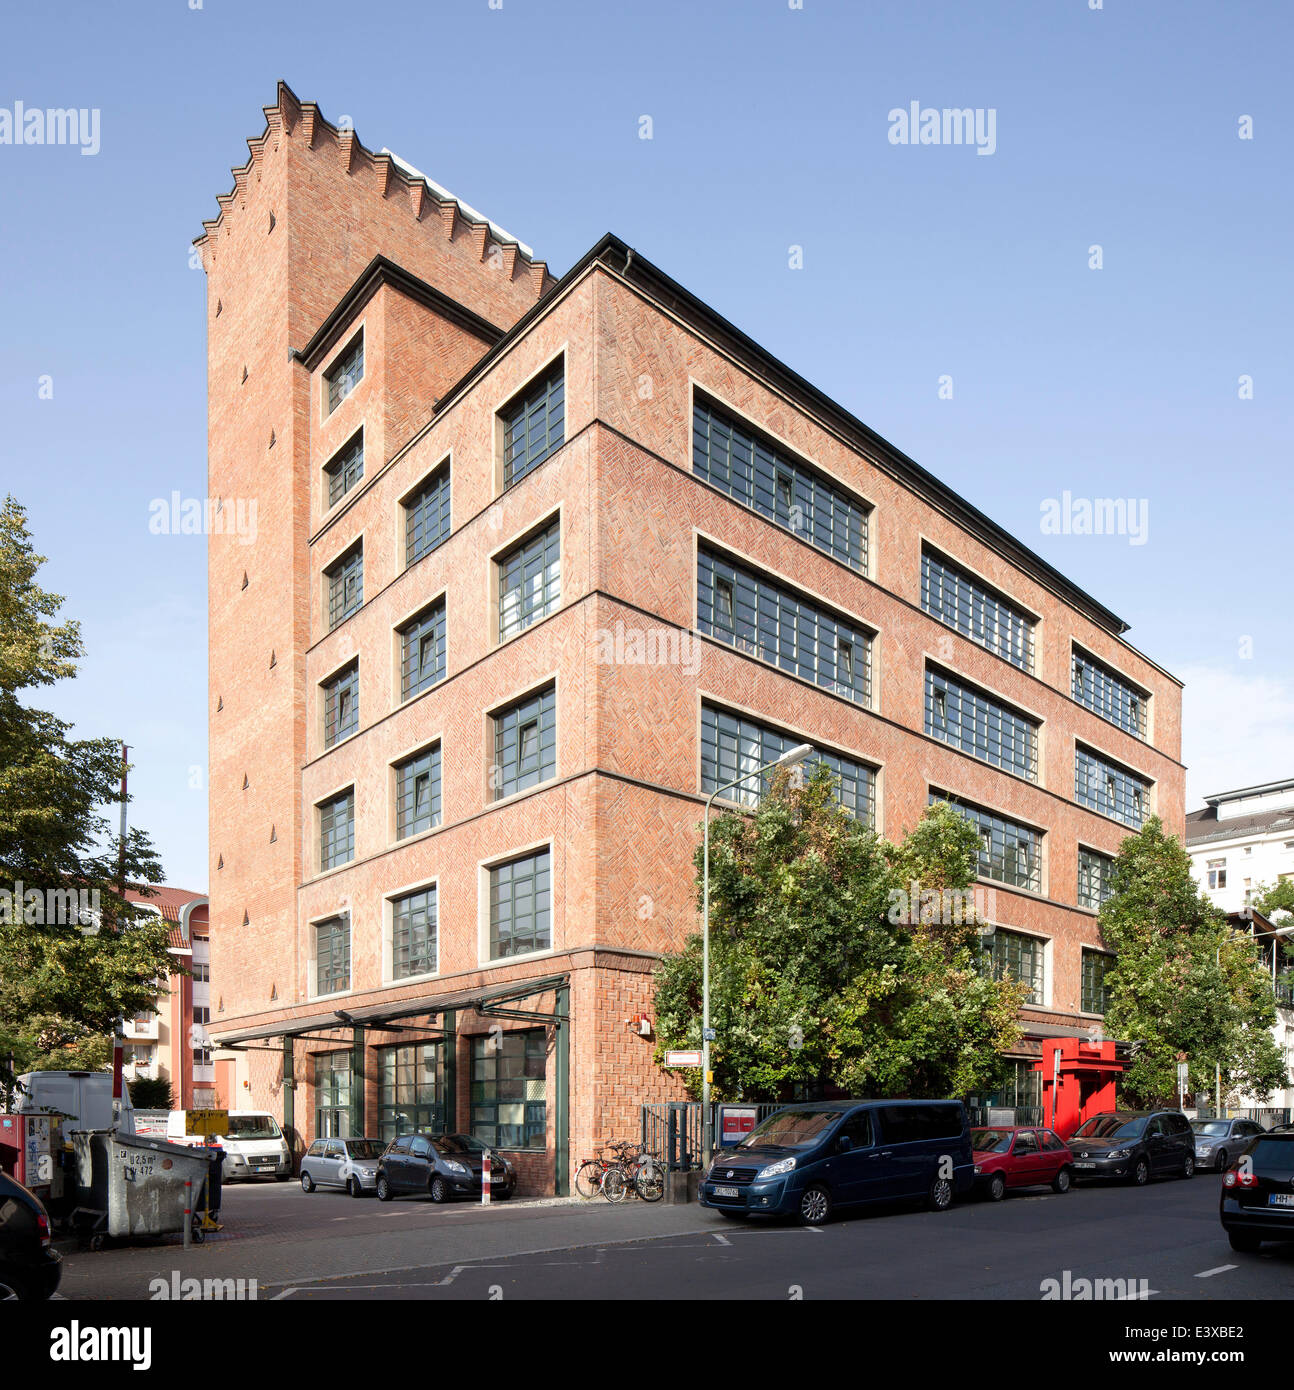 Künstlerhaus Mousonturm, former soap and perfume factory, first high-rise building in Frankfurt in 1928, Ostend - Stock Image